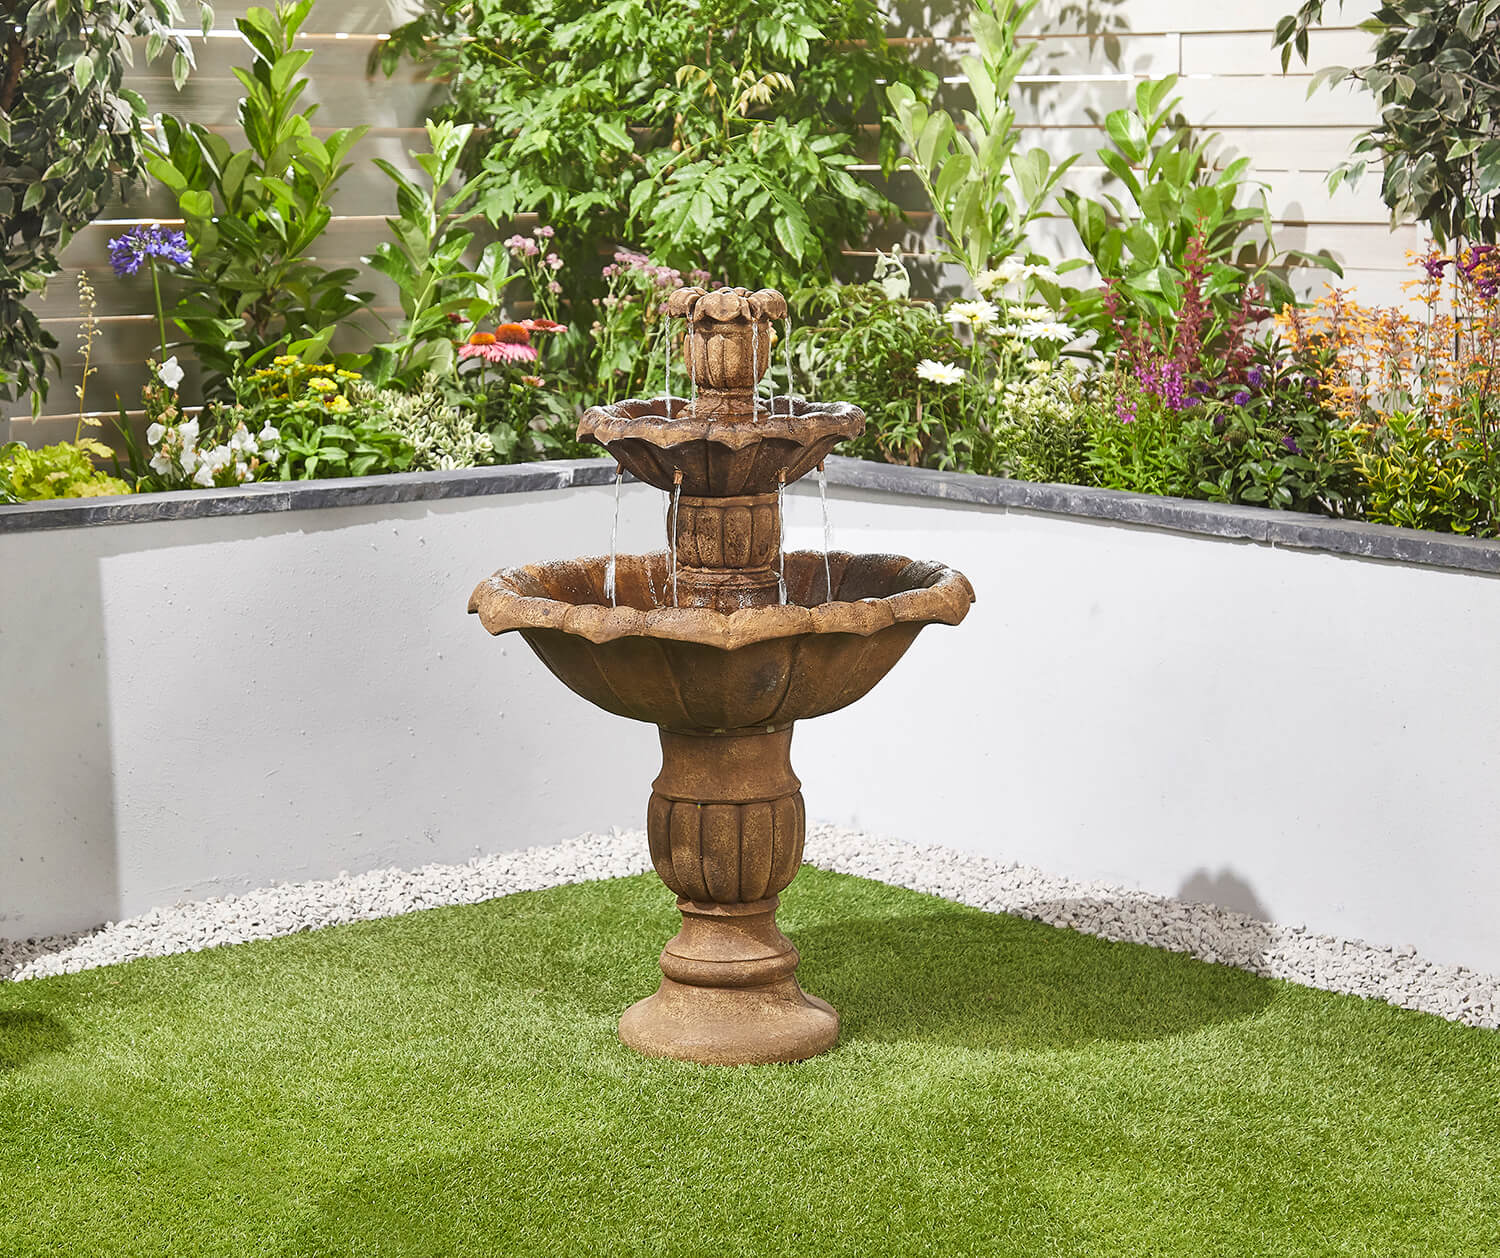 Ornate Falls Easy Fountain Garden Water Feature - £299.99 ...